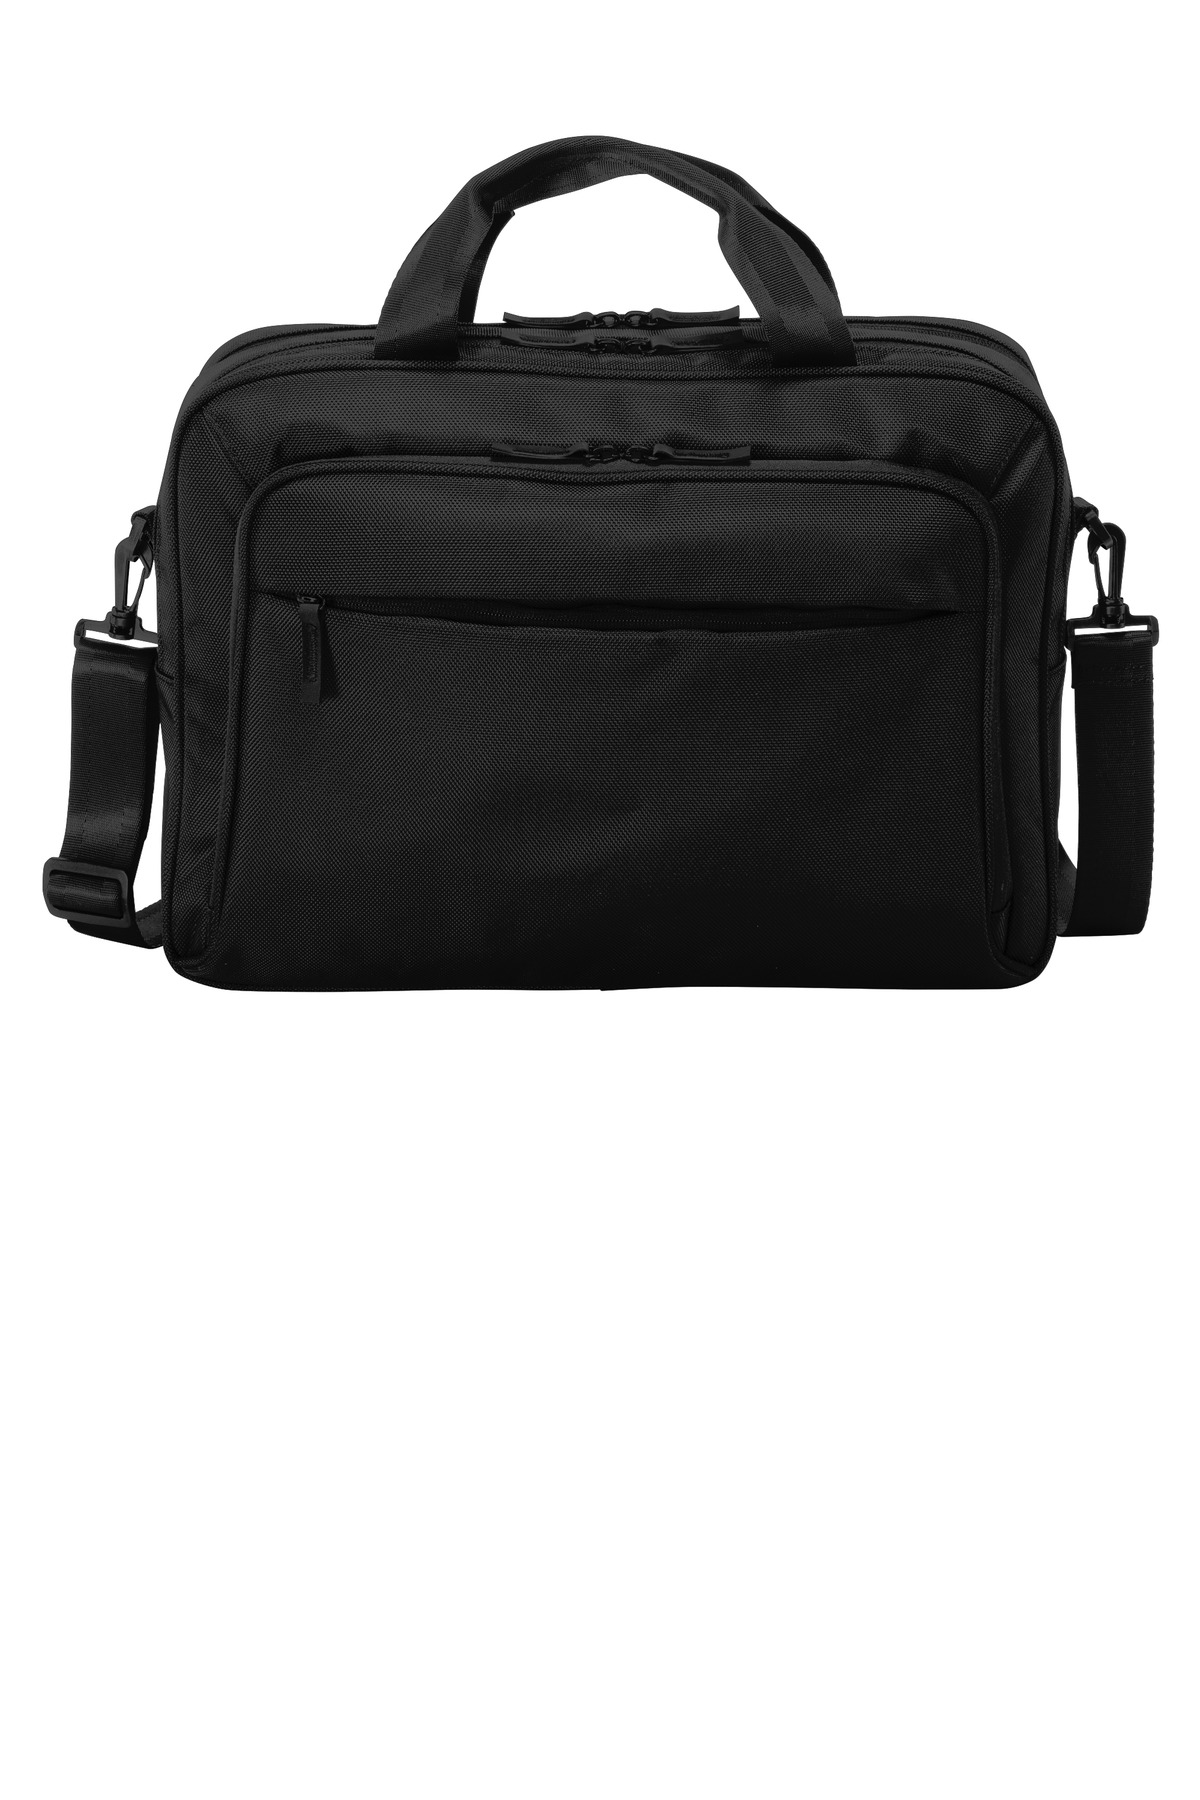 Port Authority  ®  Exec Briefcase. BG323 - Black